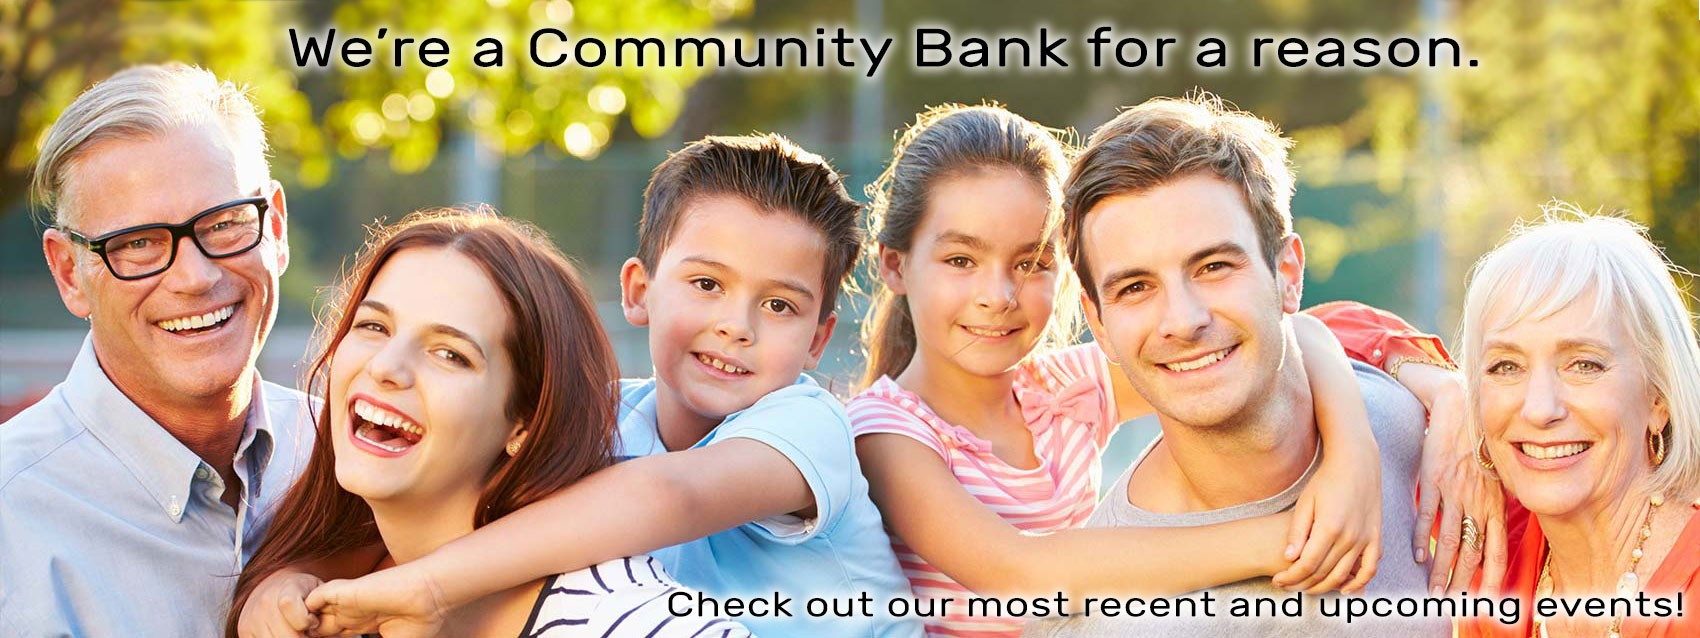 We're a community bank. View our community involvement.